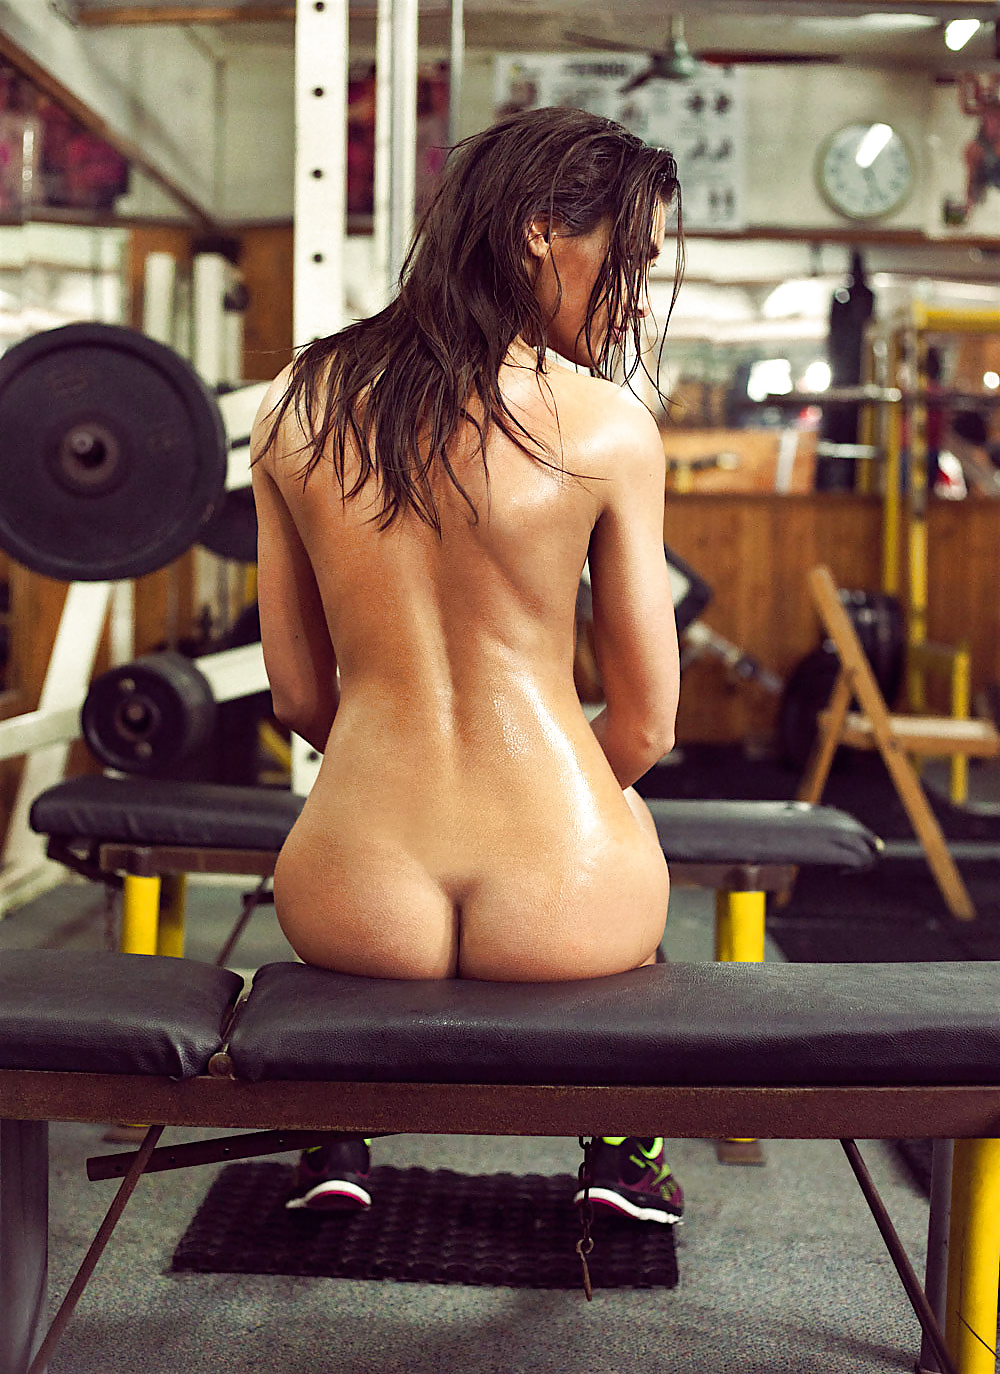 Hot Fitness Girls Nude Workout Photo